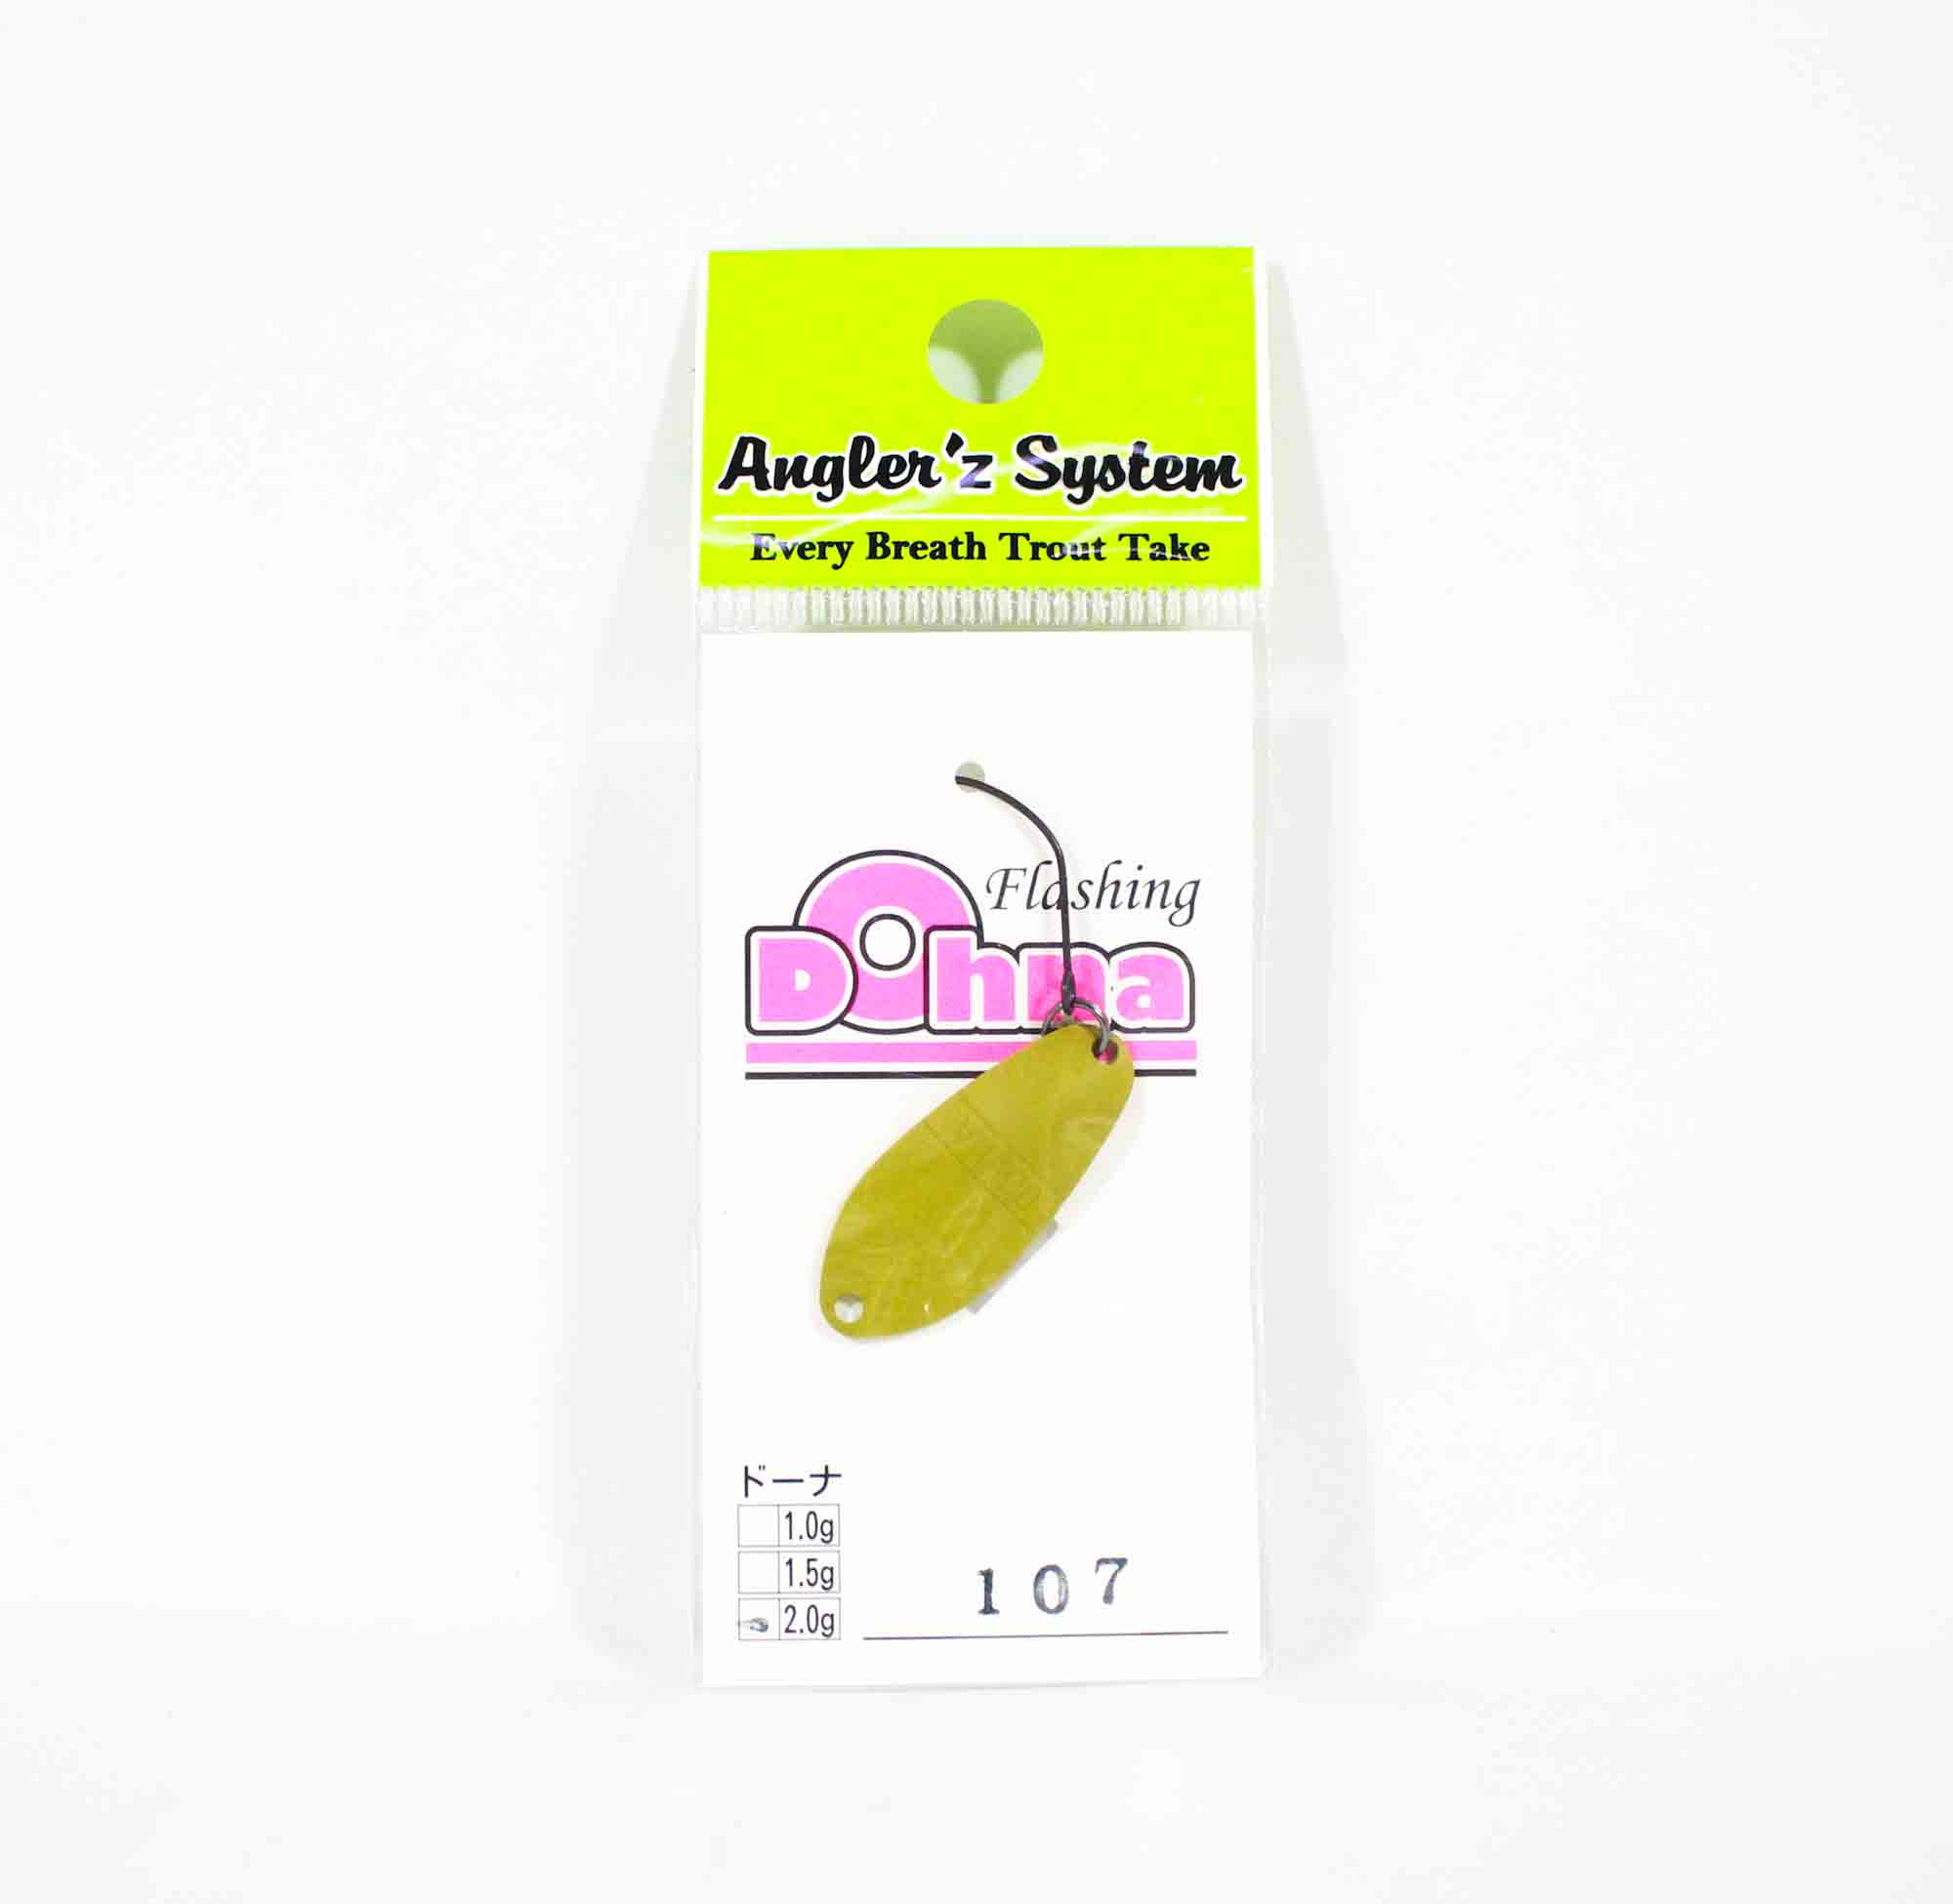 Anglers System Antem Dohna 2.0 grams Spoon Sinking Lure 107 (4312)